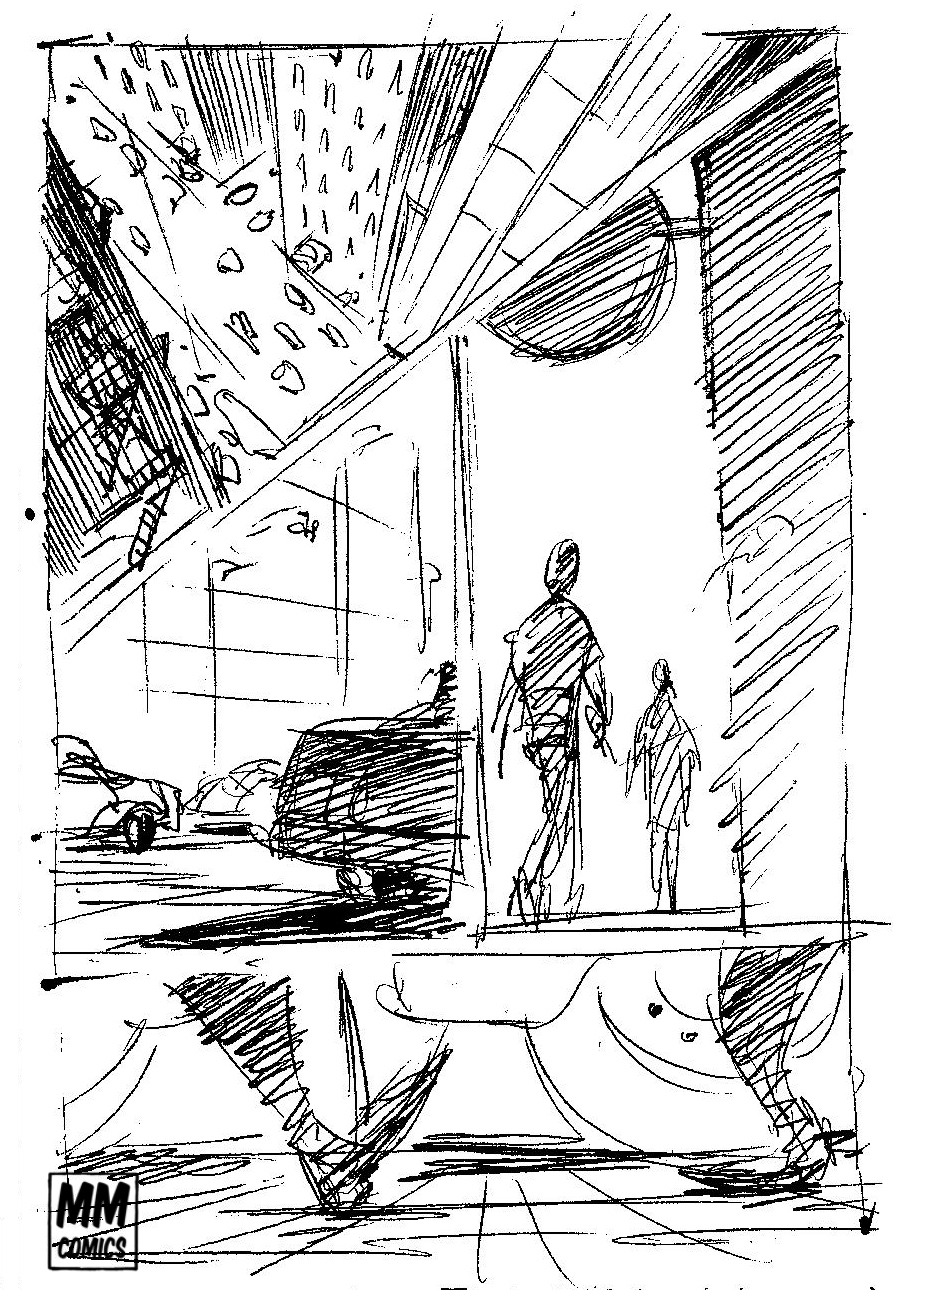 story panel misc rough sketch.jpg